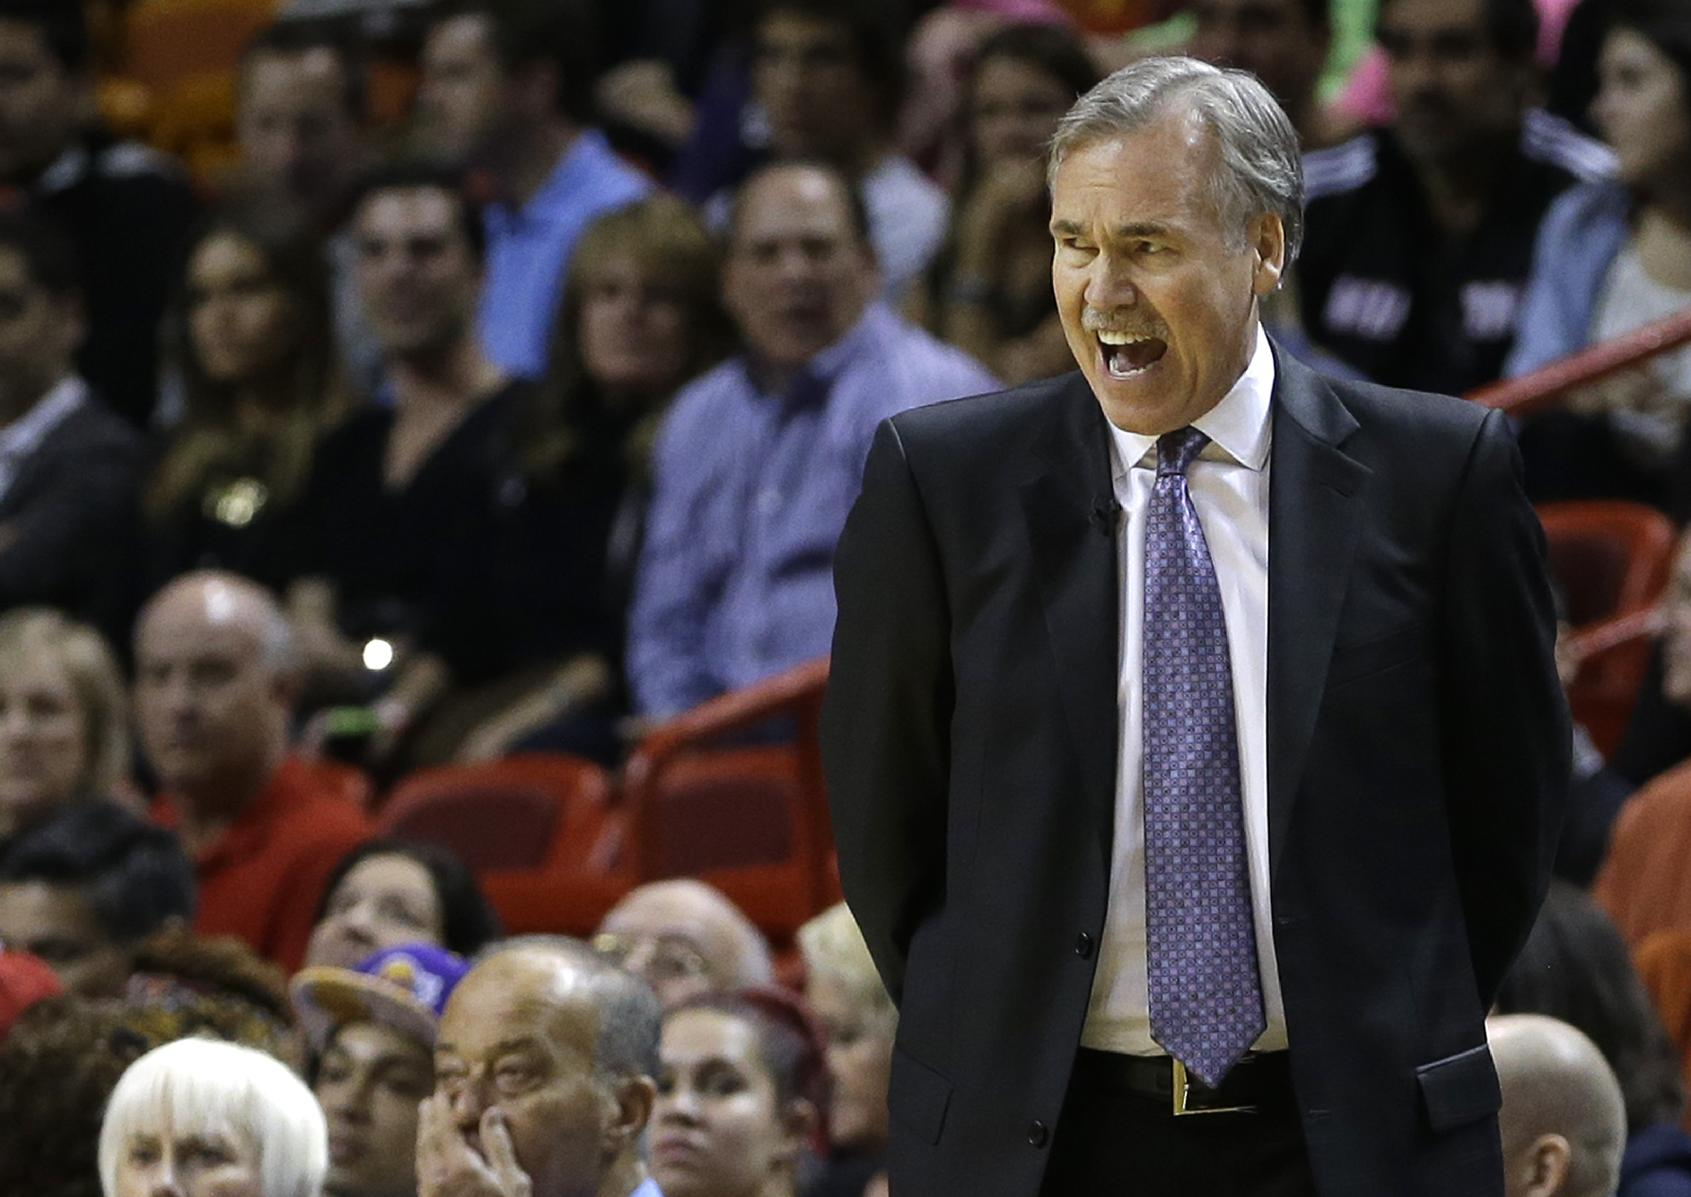 Los Angeles Lakers head coach Mike D'Antoni shouts instructions to players during the first quarter of an NBA basketball game against the Miami Heat in Miami, Thursday, Jan. 23, 2014